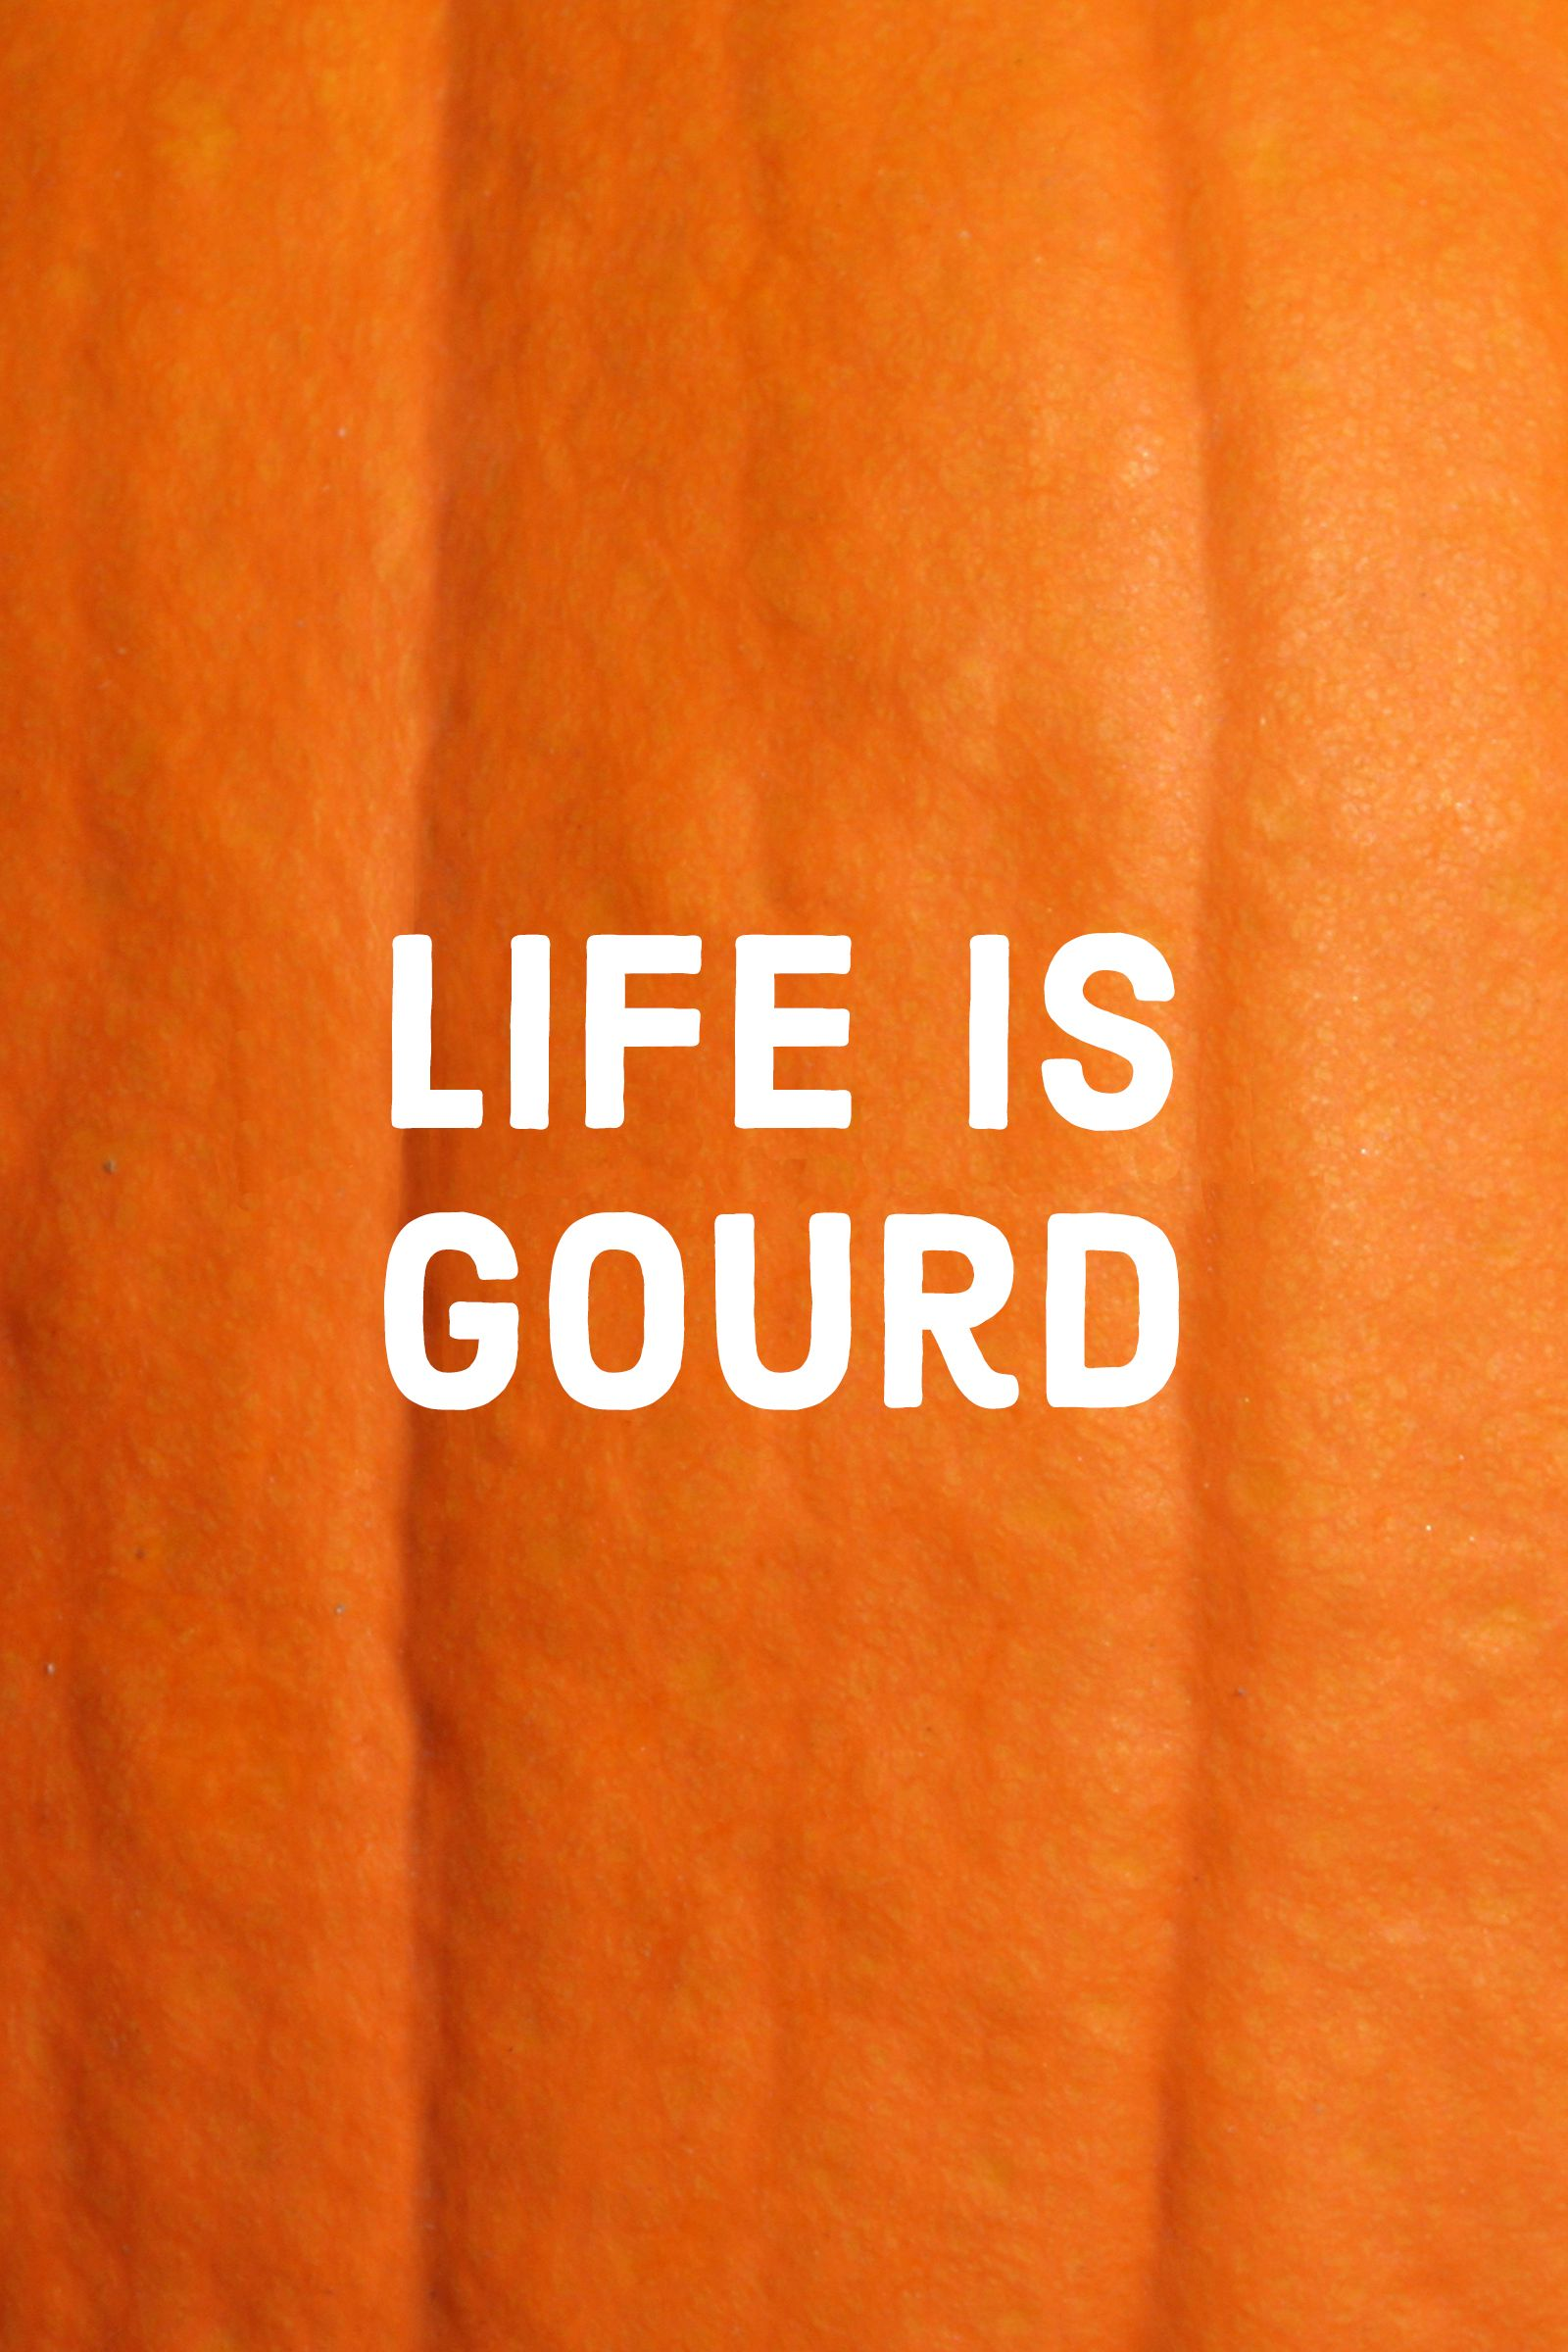 pumpkin quotes andpuns life is gourd